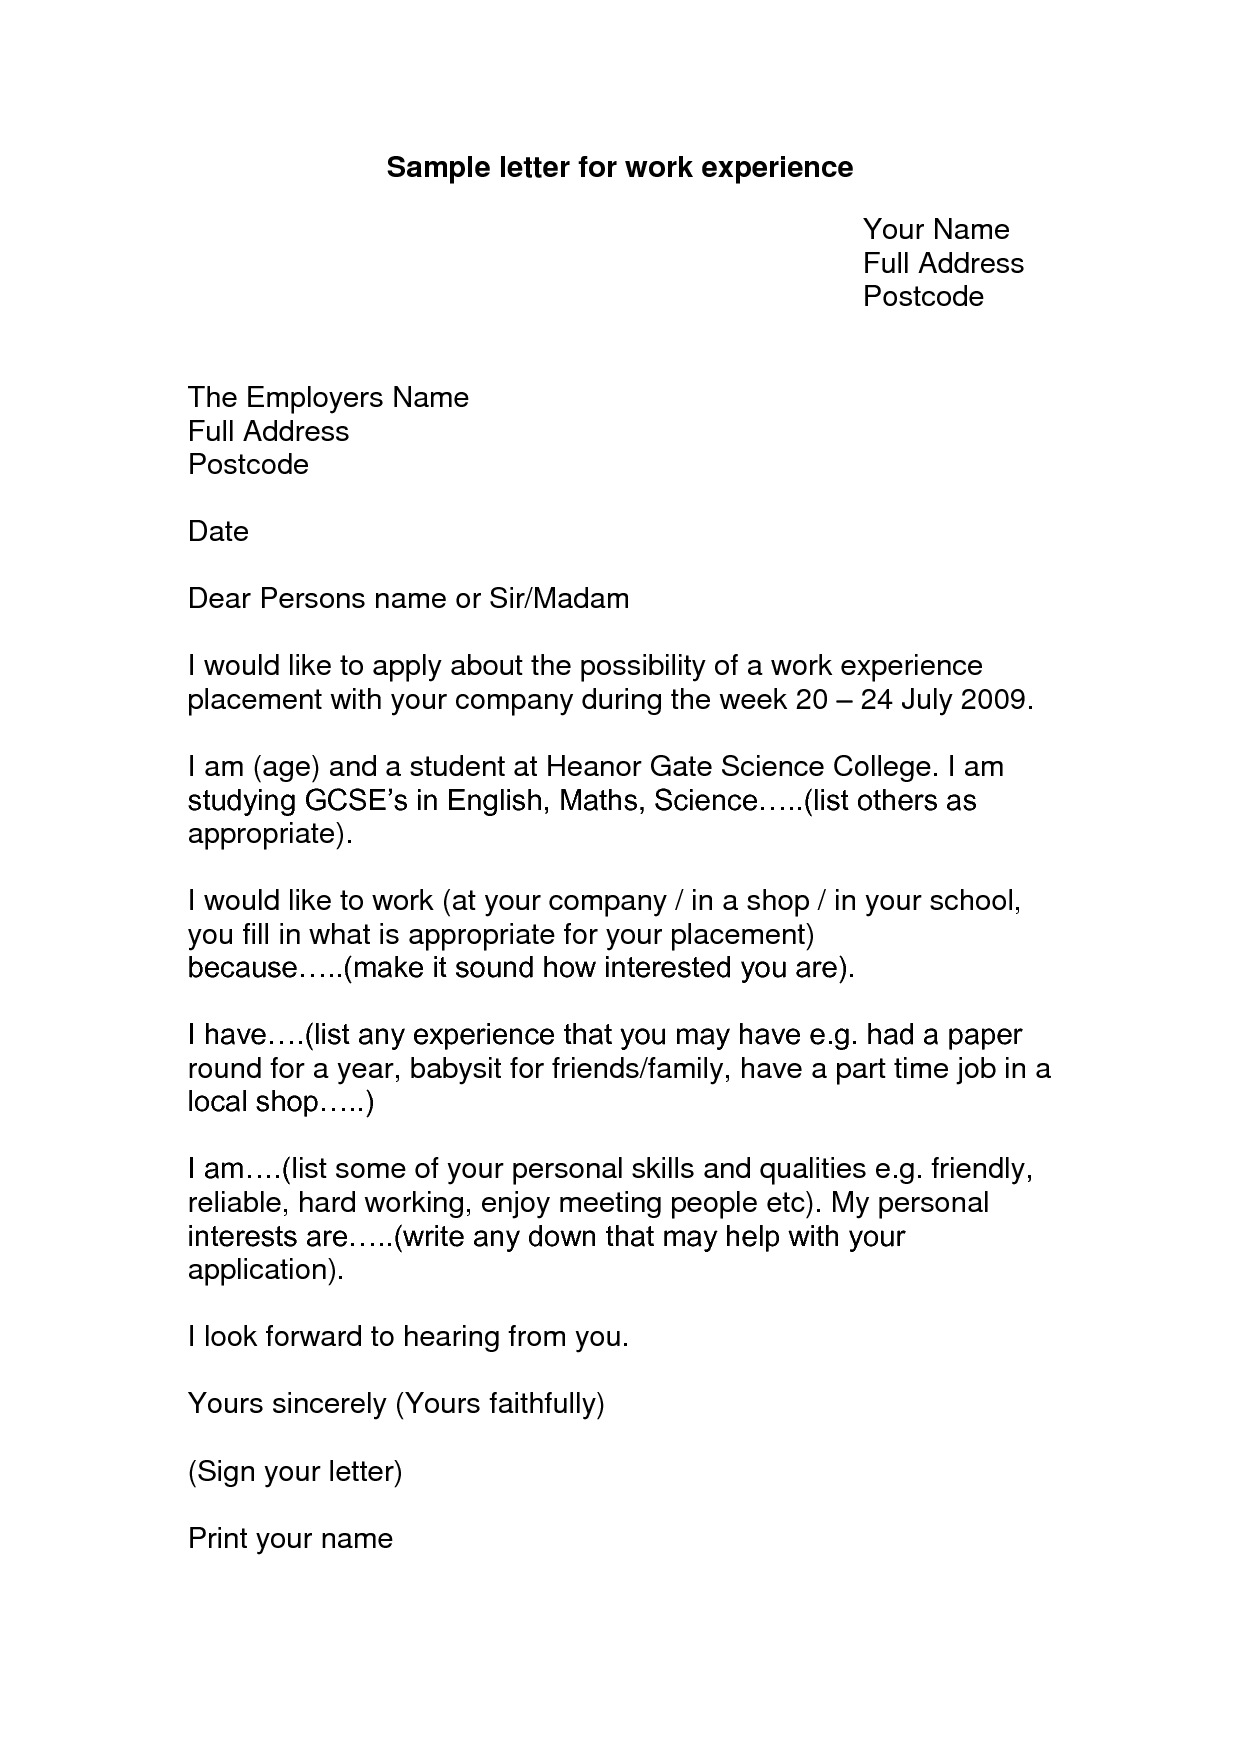 work experience letter example   Google Search | Looking for jobs